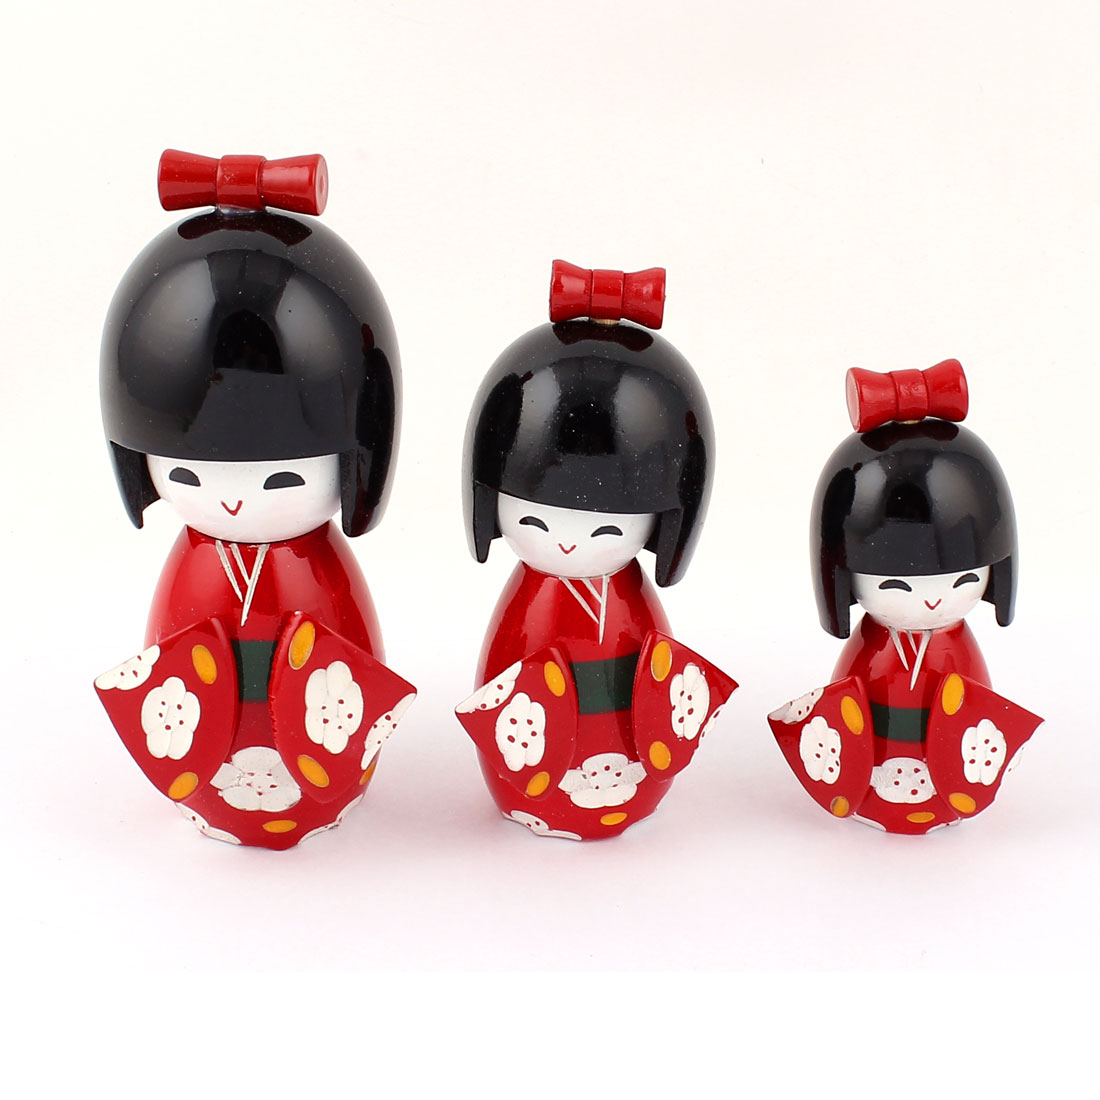 3 in 1 Wooden Flower Print Japanese Kimono Kokeshi Modelling Doll Decoration Red